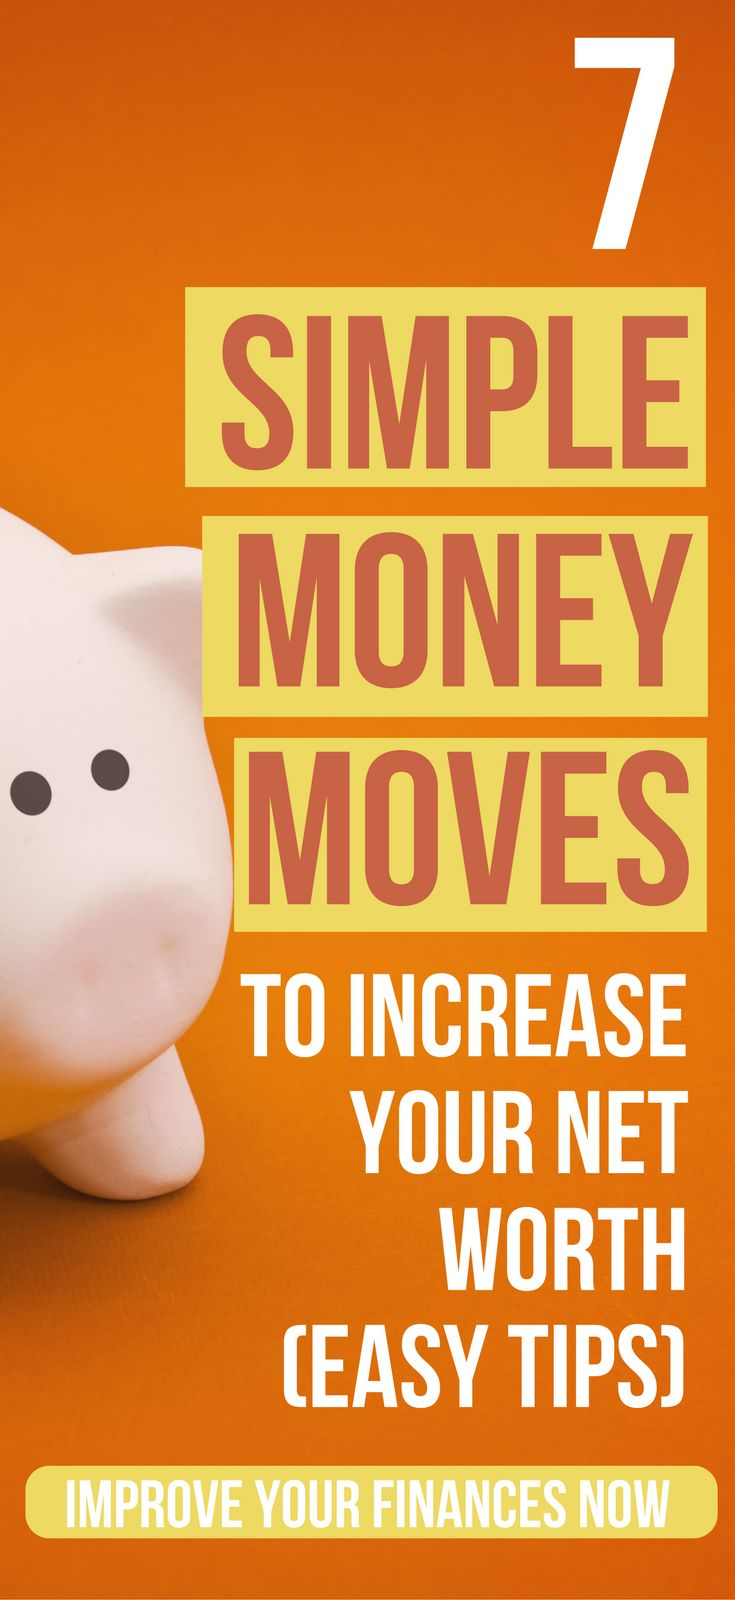 7 Extremely Easy Money Moves To Grow Your Net Worth  personal finance tips | money management tips | financial planning for beginners | financial planning for beginners ideas  #budgeting #wealthy #investment #moneymanagement